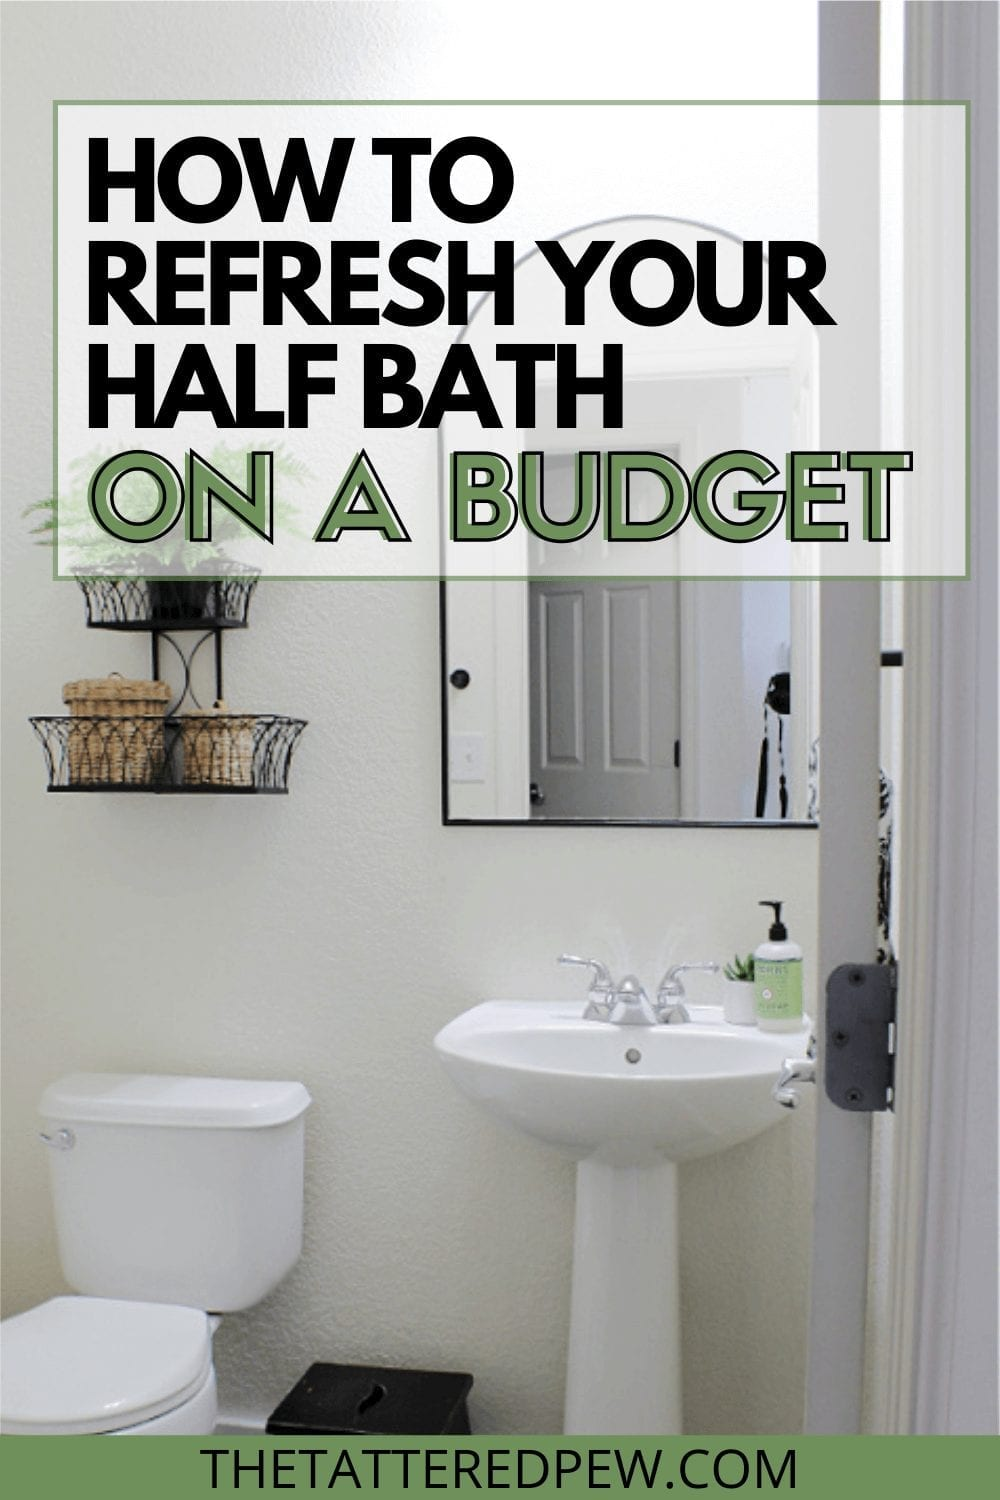 Learn how easy it is to refresh your half bath while on a budget!